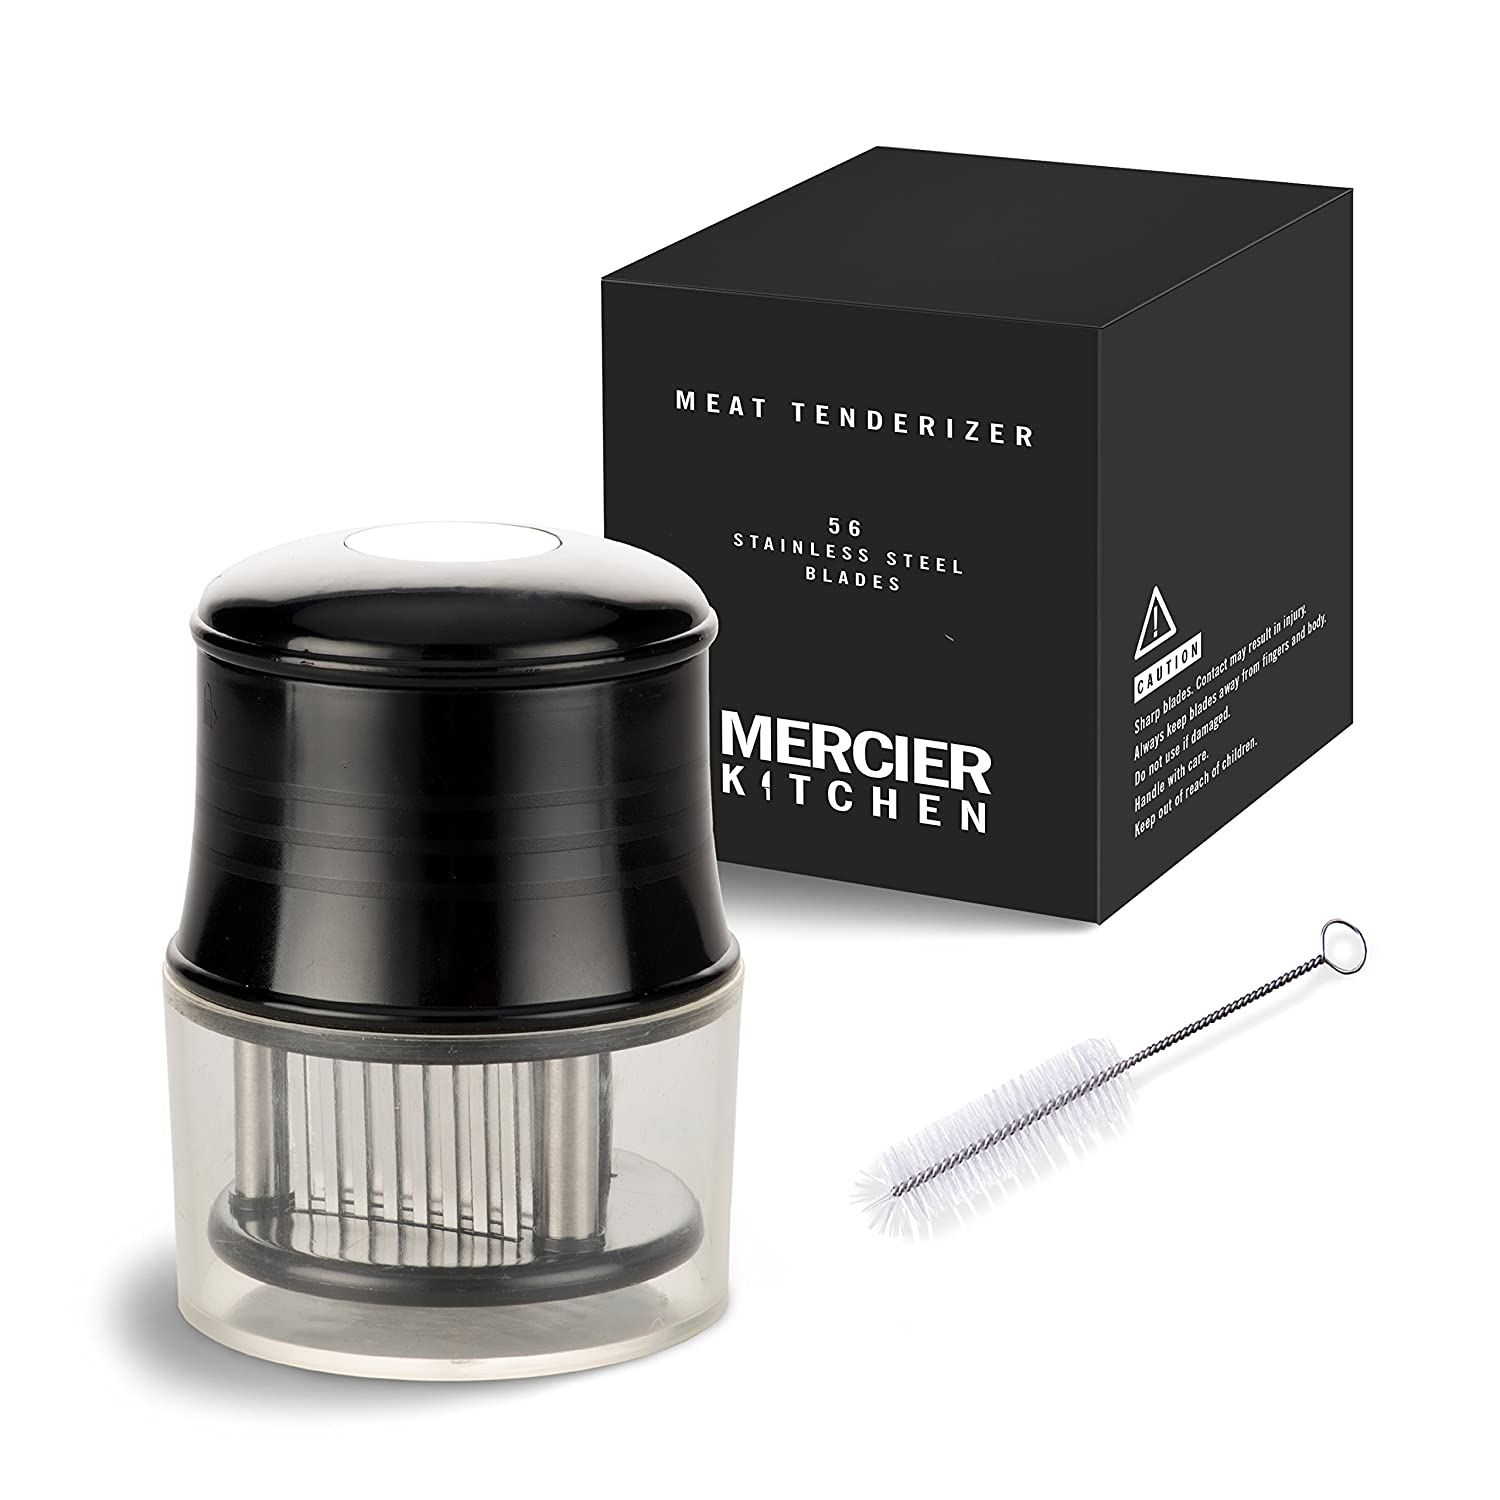 MERCIER Professional Needle Meat Tenderizer - 56 Stainless Steel Blades - For Steak, Chicken, Fish and Pork + Cleaning Brush MERCIER KITCHEN MERCIER-MEAT-TENDERIZER